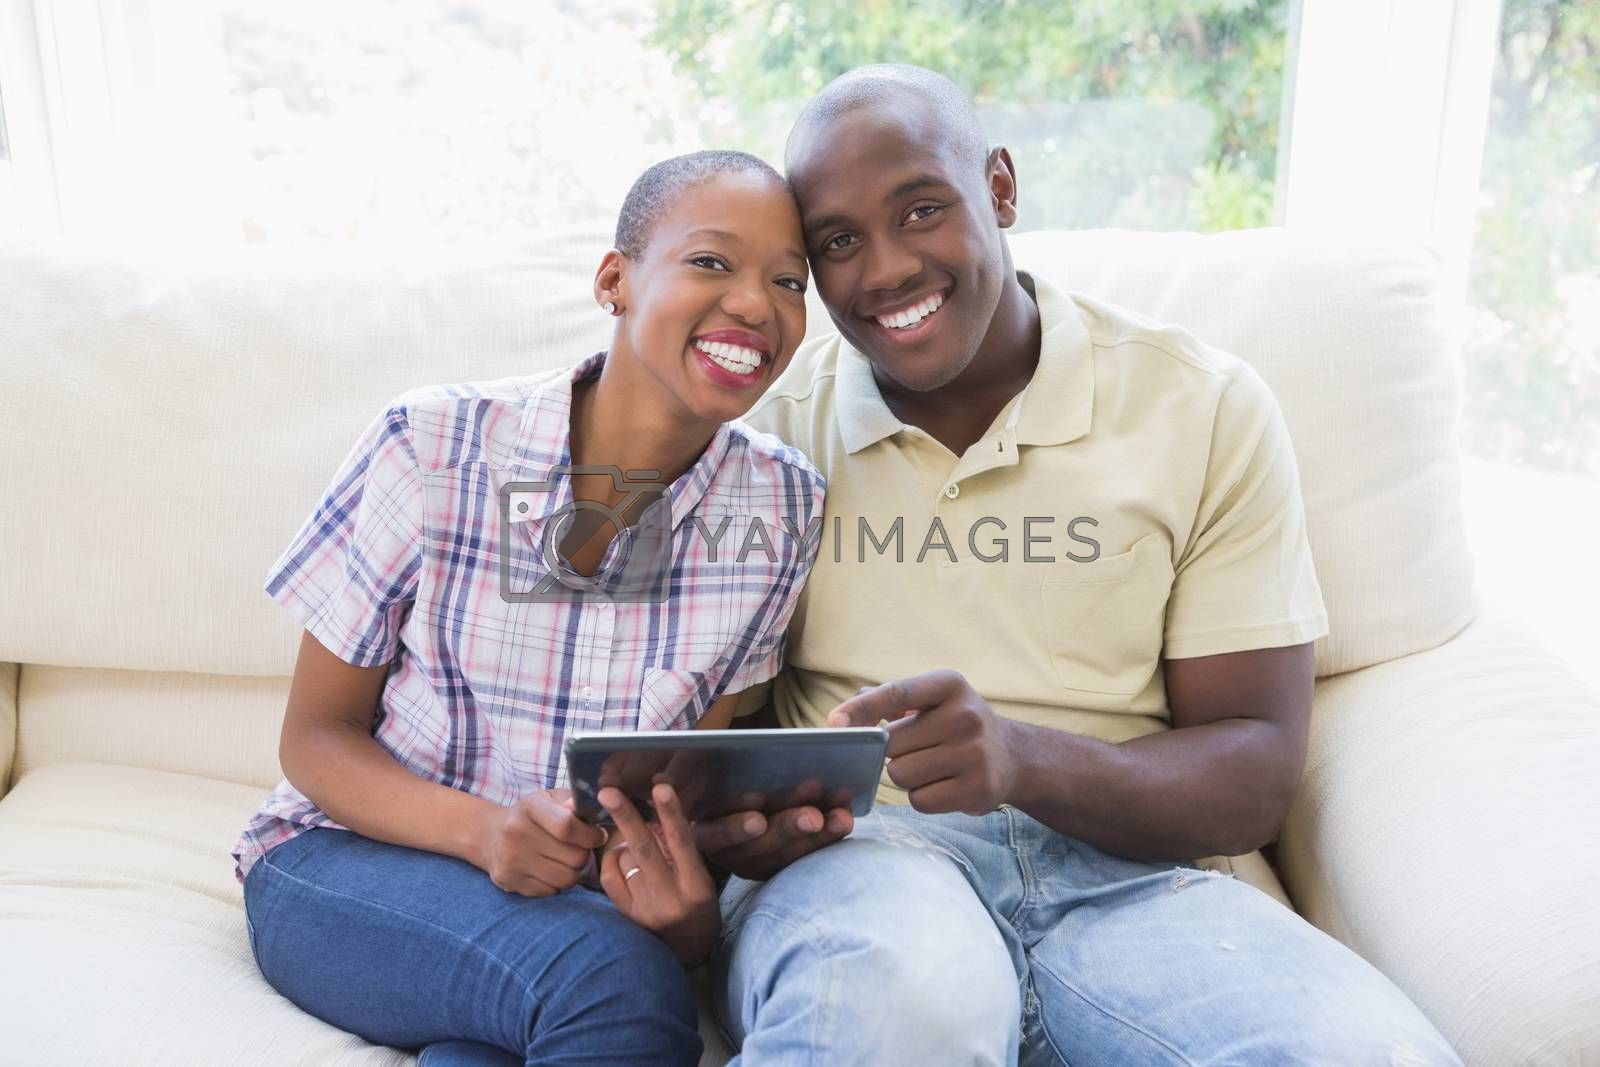 Royalty free image of portrait of a happy smiling couple using digital tablet by Wavebreakmedia